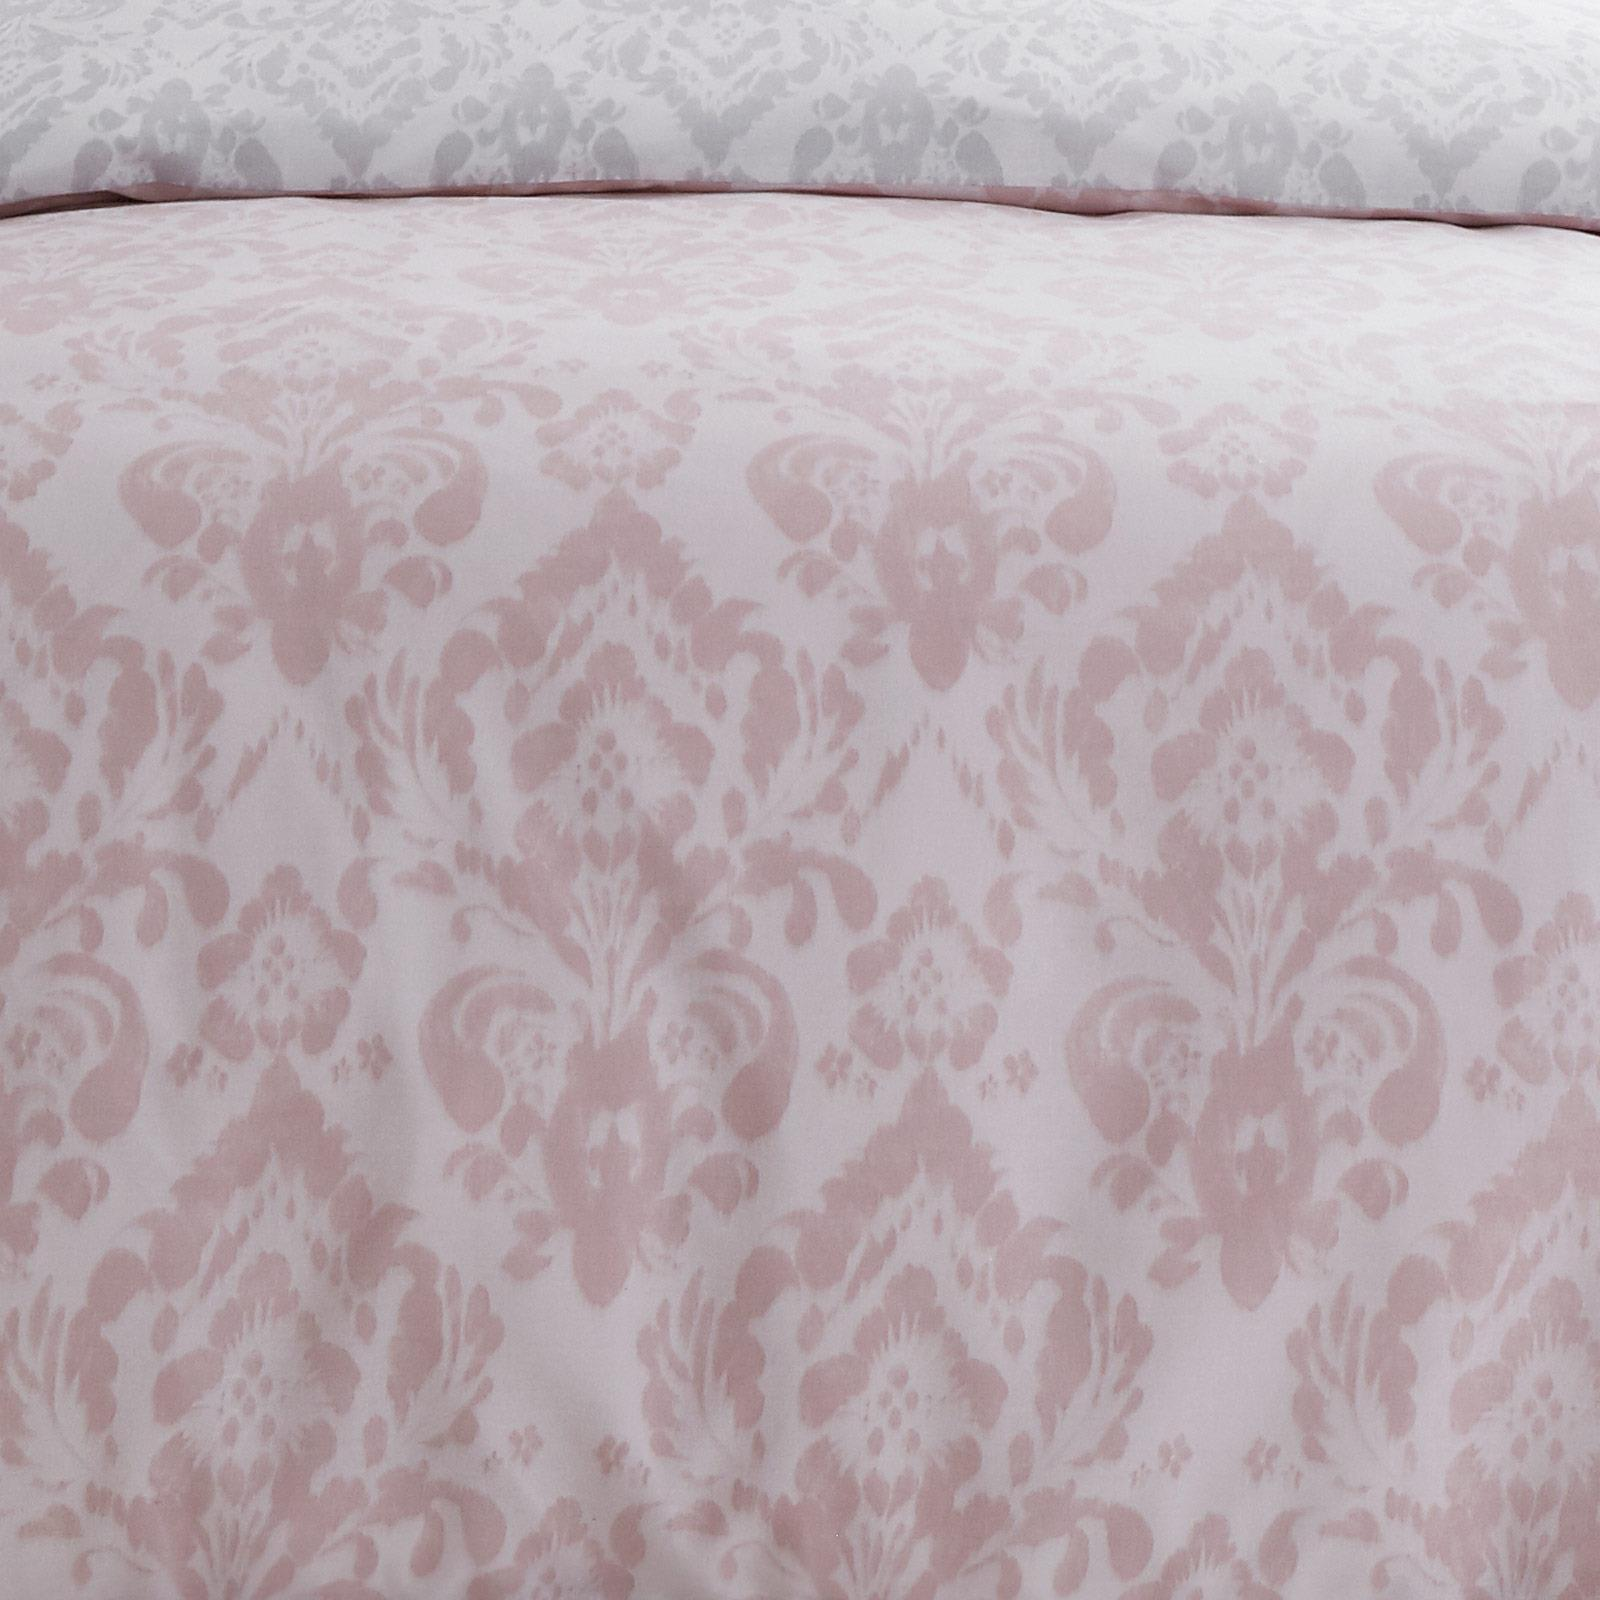 thumbnail 17 - Catherine Lansfield Damask Blush Duvet Covers Pink Grey Quilt Cover Bedding Sets